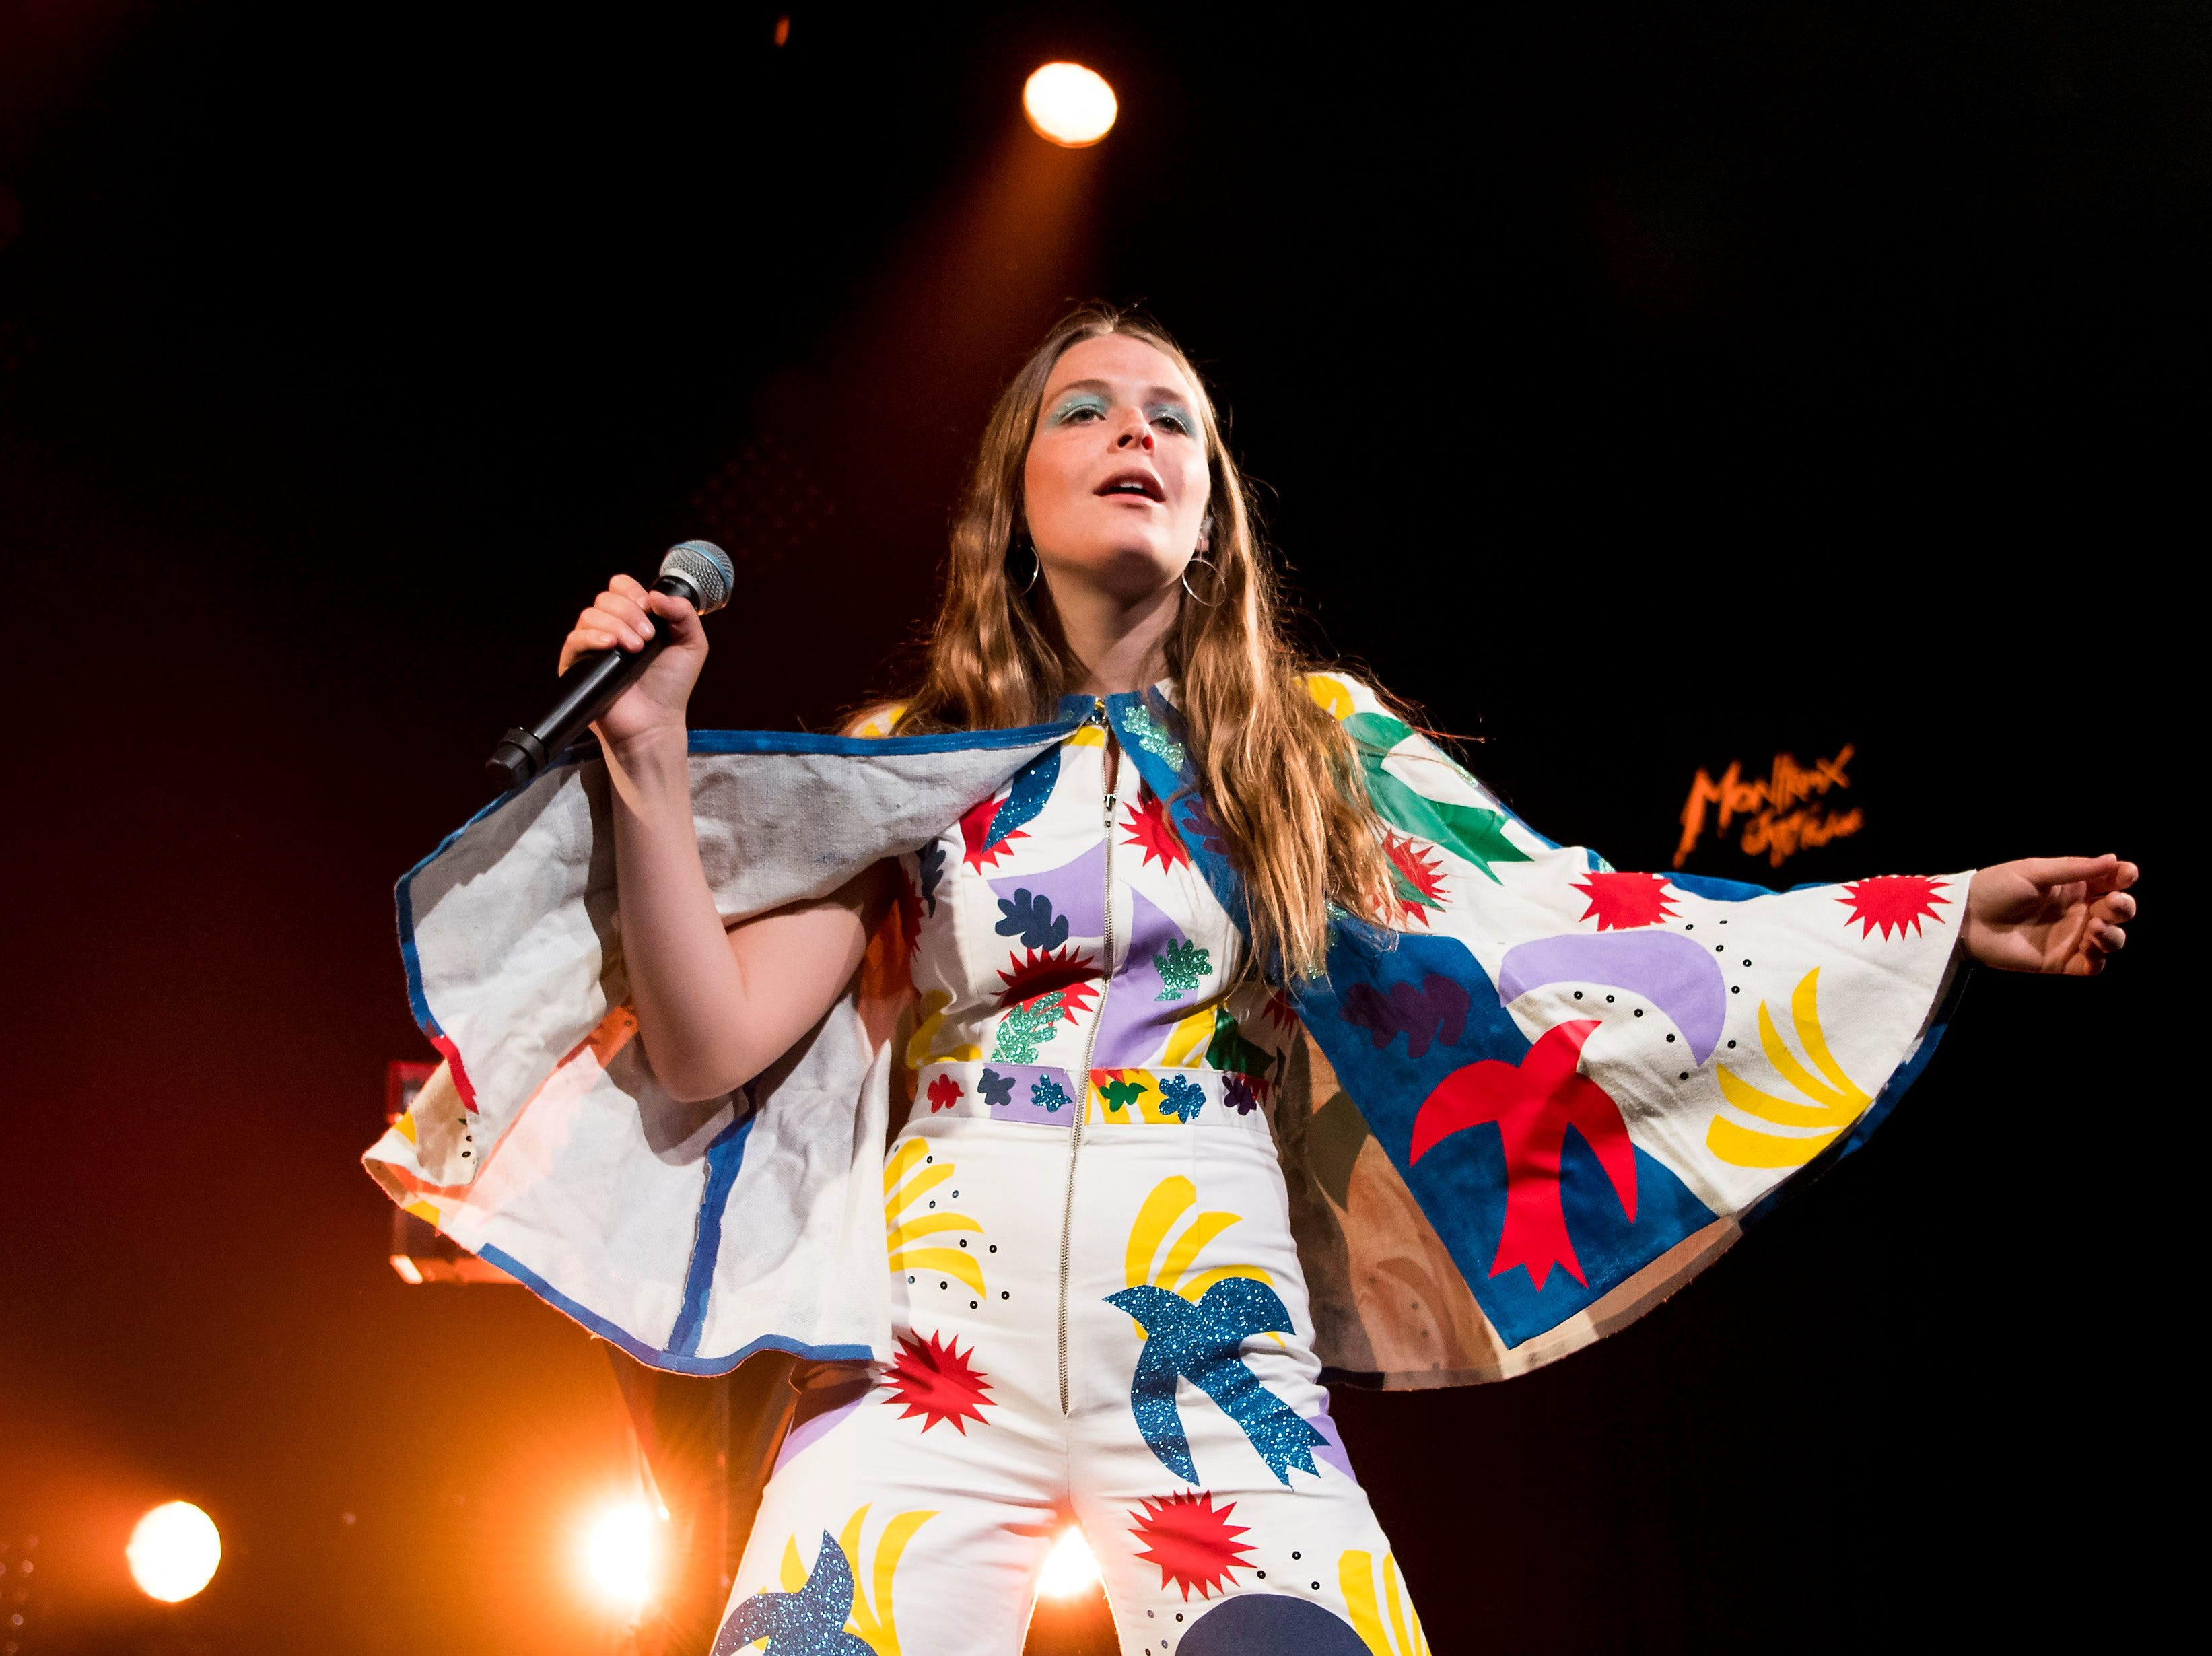 epa06060462 US singer Maggie Rogers performs on stage during the 51st Montreux Jazz Festival, in Montreux, Switzerland, 01 July 2017. The event runs from 30 June to 15 July.  EPA/JEAN-CHRISTOPHE BOTT   EDITORIAL USE ONLY ORG XMIT: MJF101